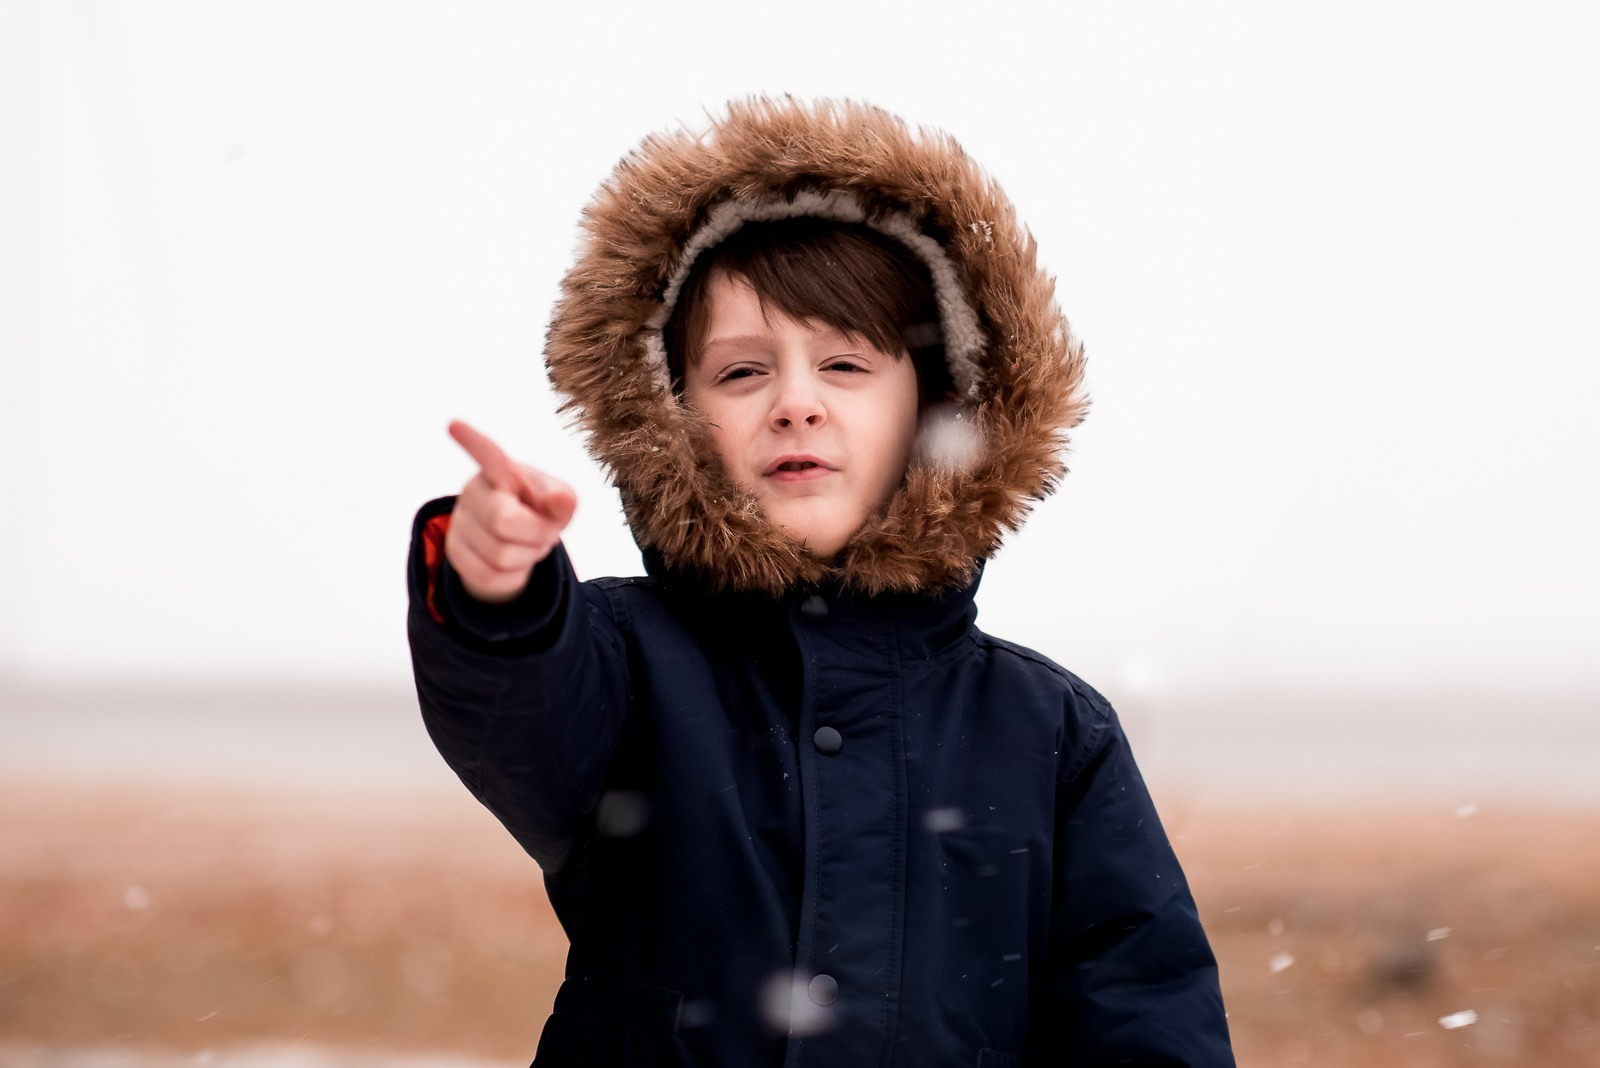 Photographing struggle - autistic child in winter